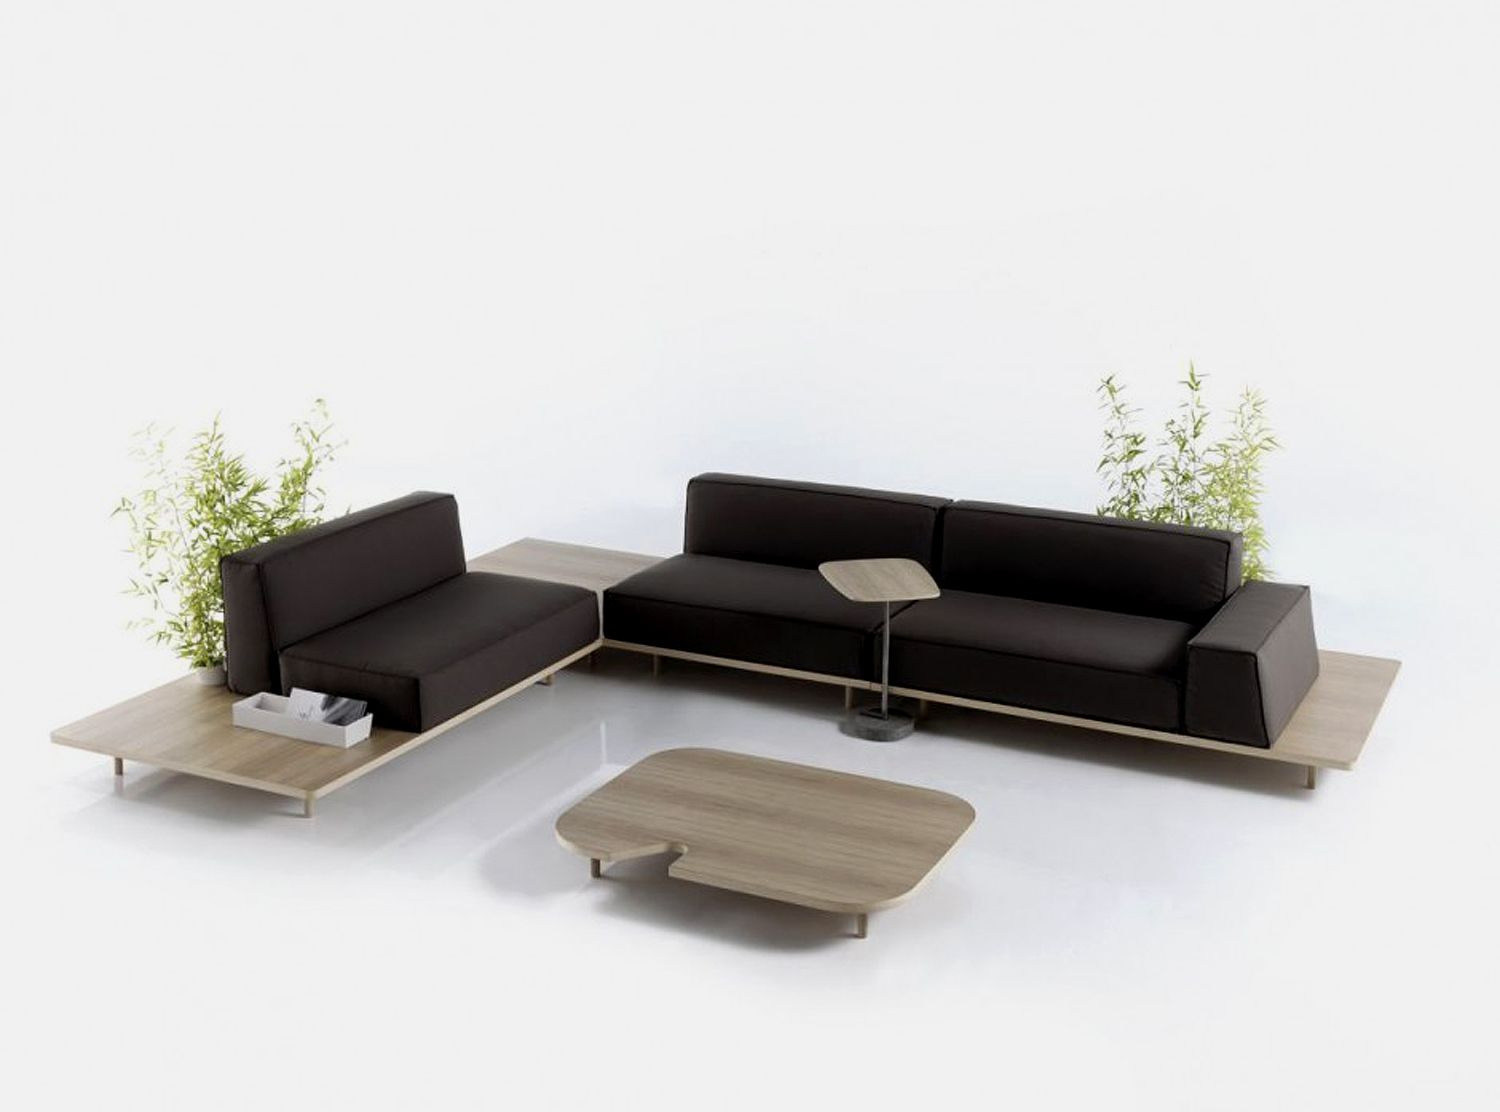 New Design Furniture Contemporary Furniture Designs Ideas Sofa Furniture Modern And